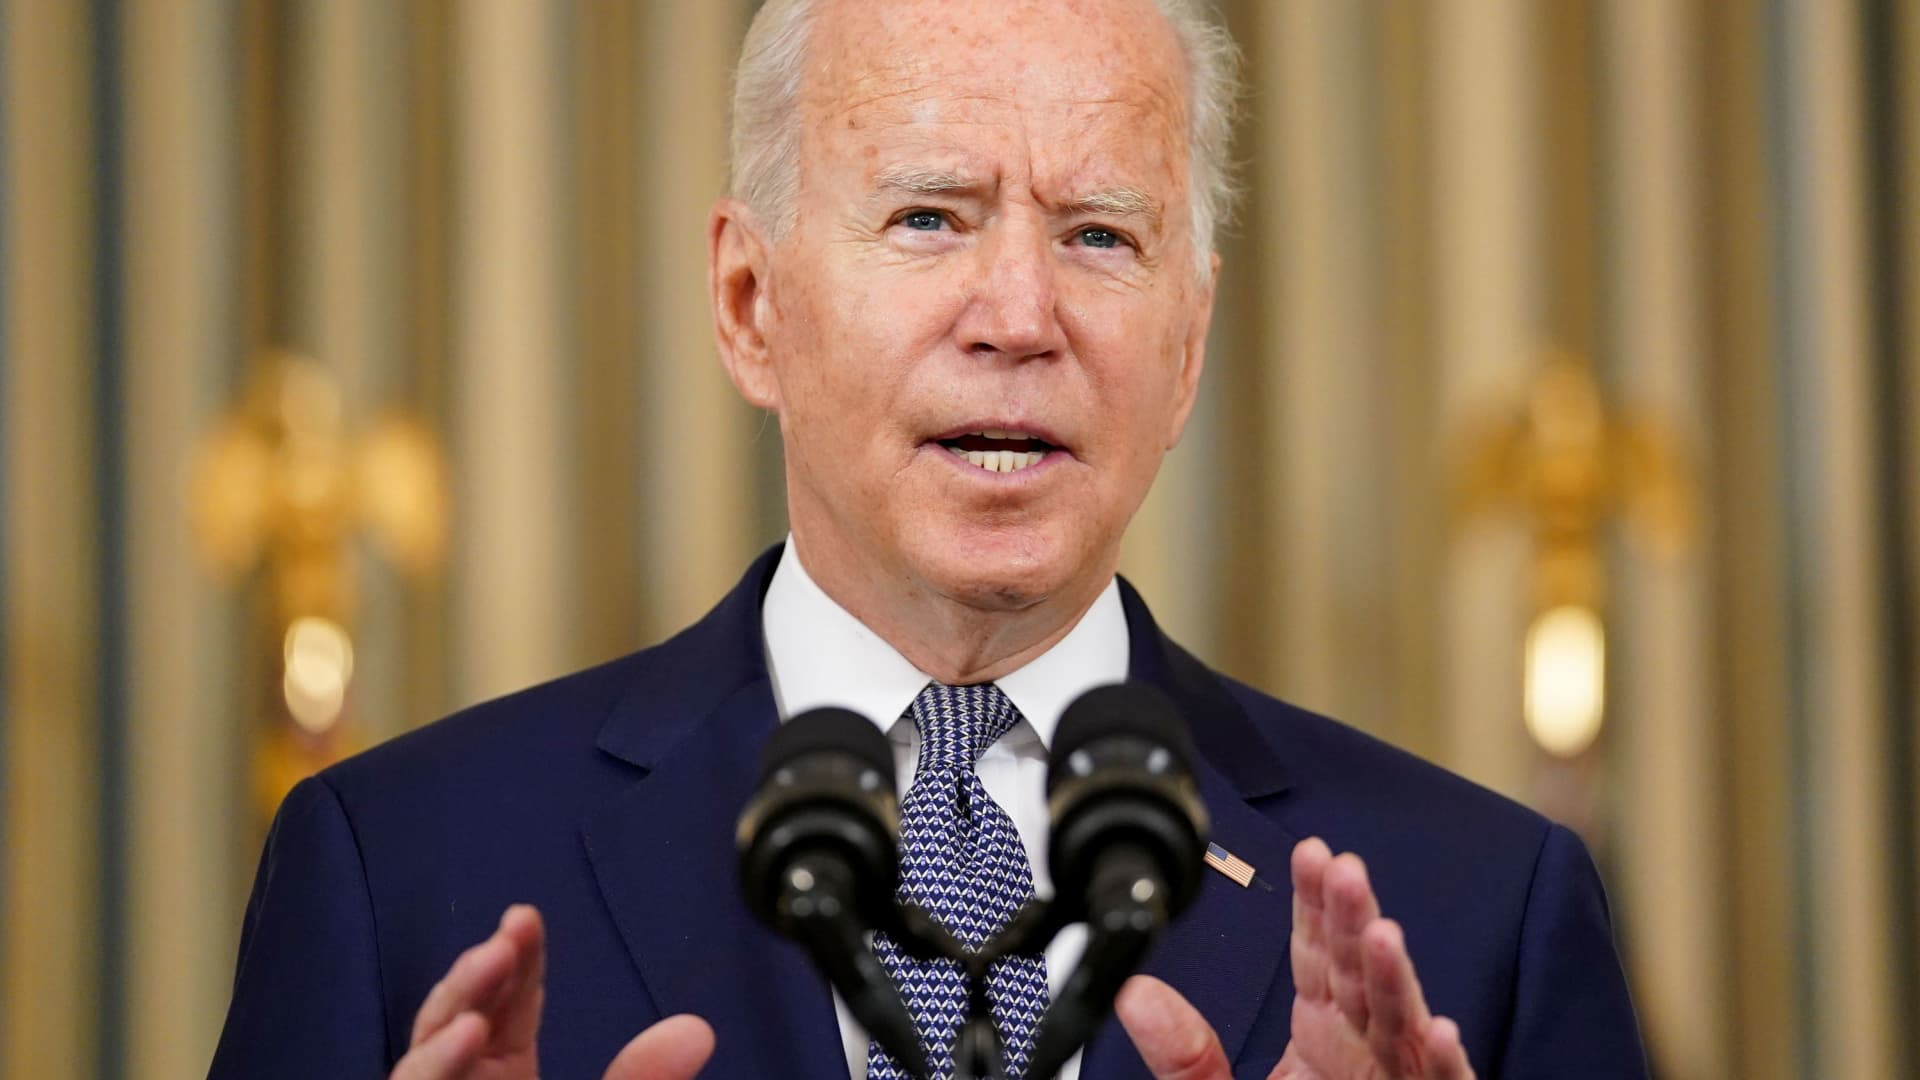 U.S. President Joe Biden delivers remarks on the August Jobs Report at the White House in Washington, September 3, 2021.